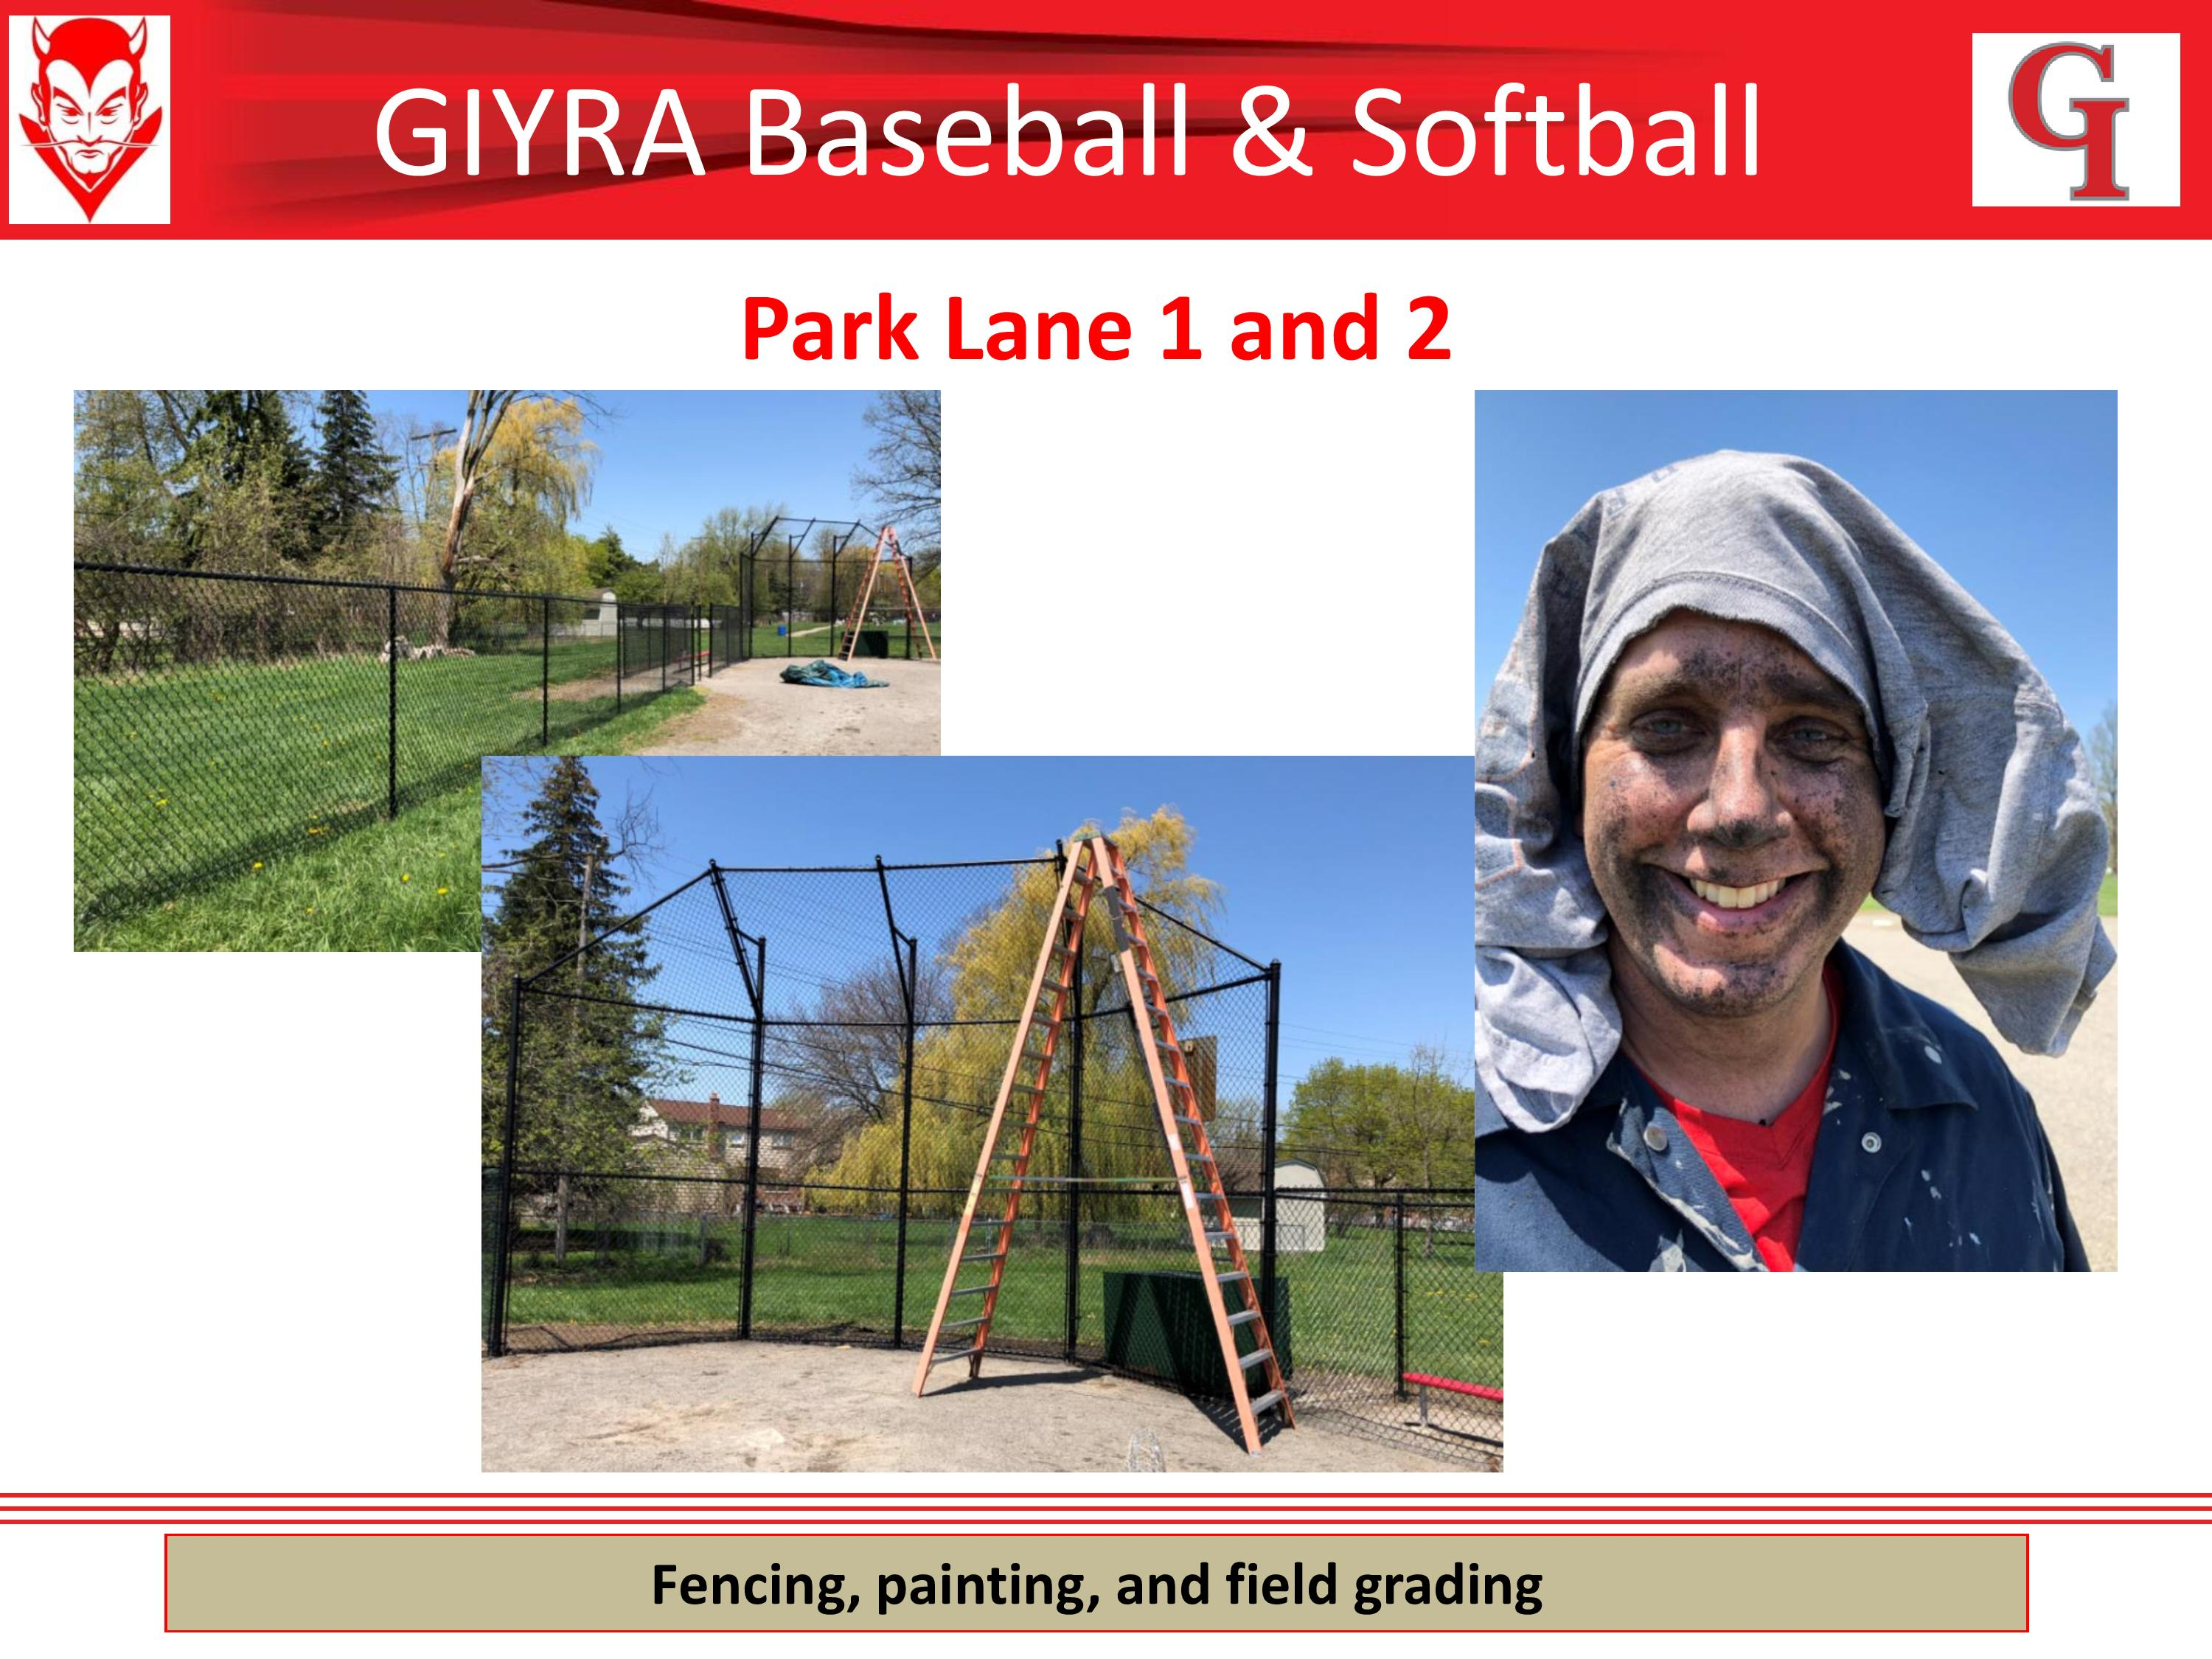 Park Lane fencing, painting, and field grading